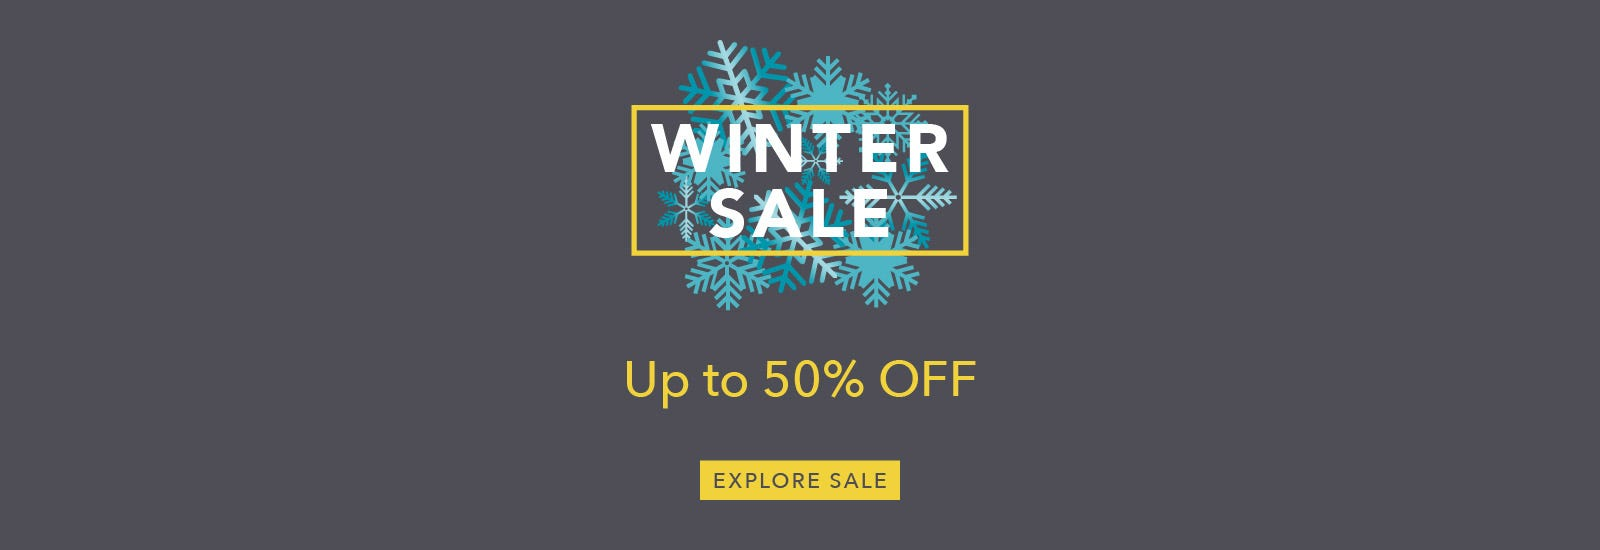 Bedeck Winter Sale 2018